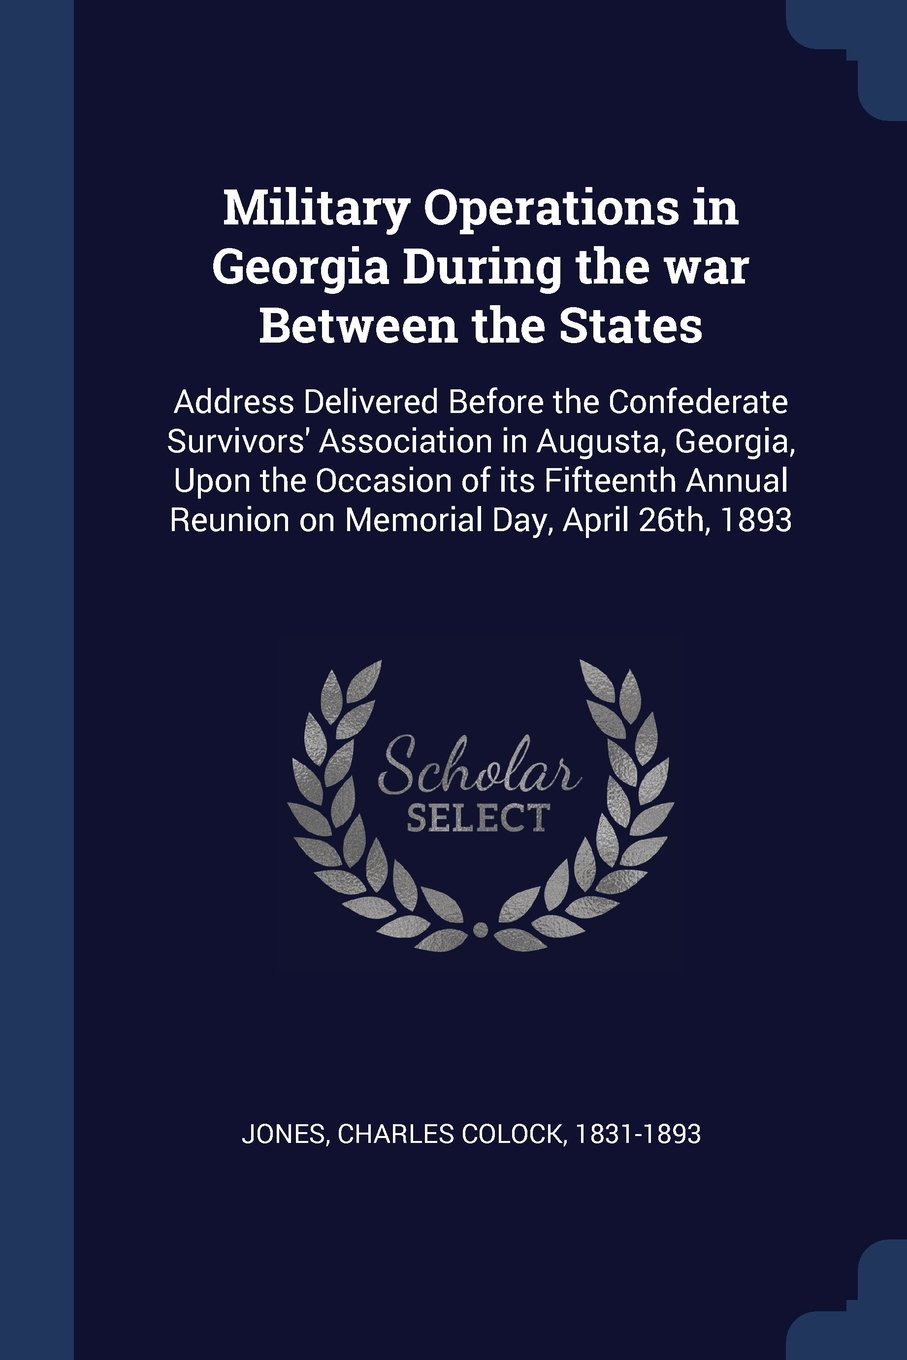 Download Military Operations in Georgia During the war Between the States: Address Delivered Before the Confederate Survivors' Association in Augusta, Georgia, ... Reunion on Memorial Day, April 26th, 1893 pdf epub